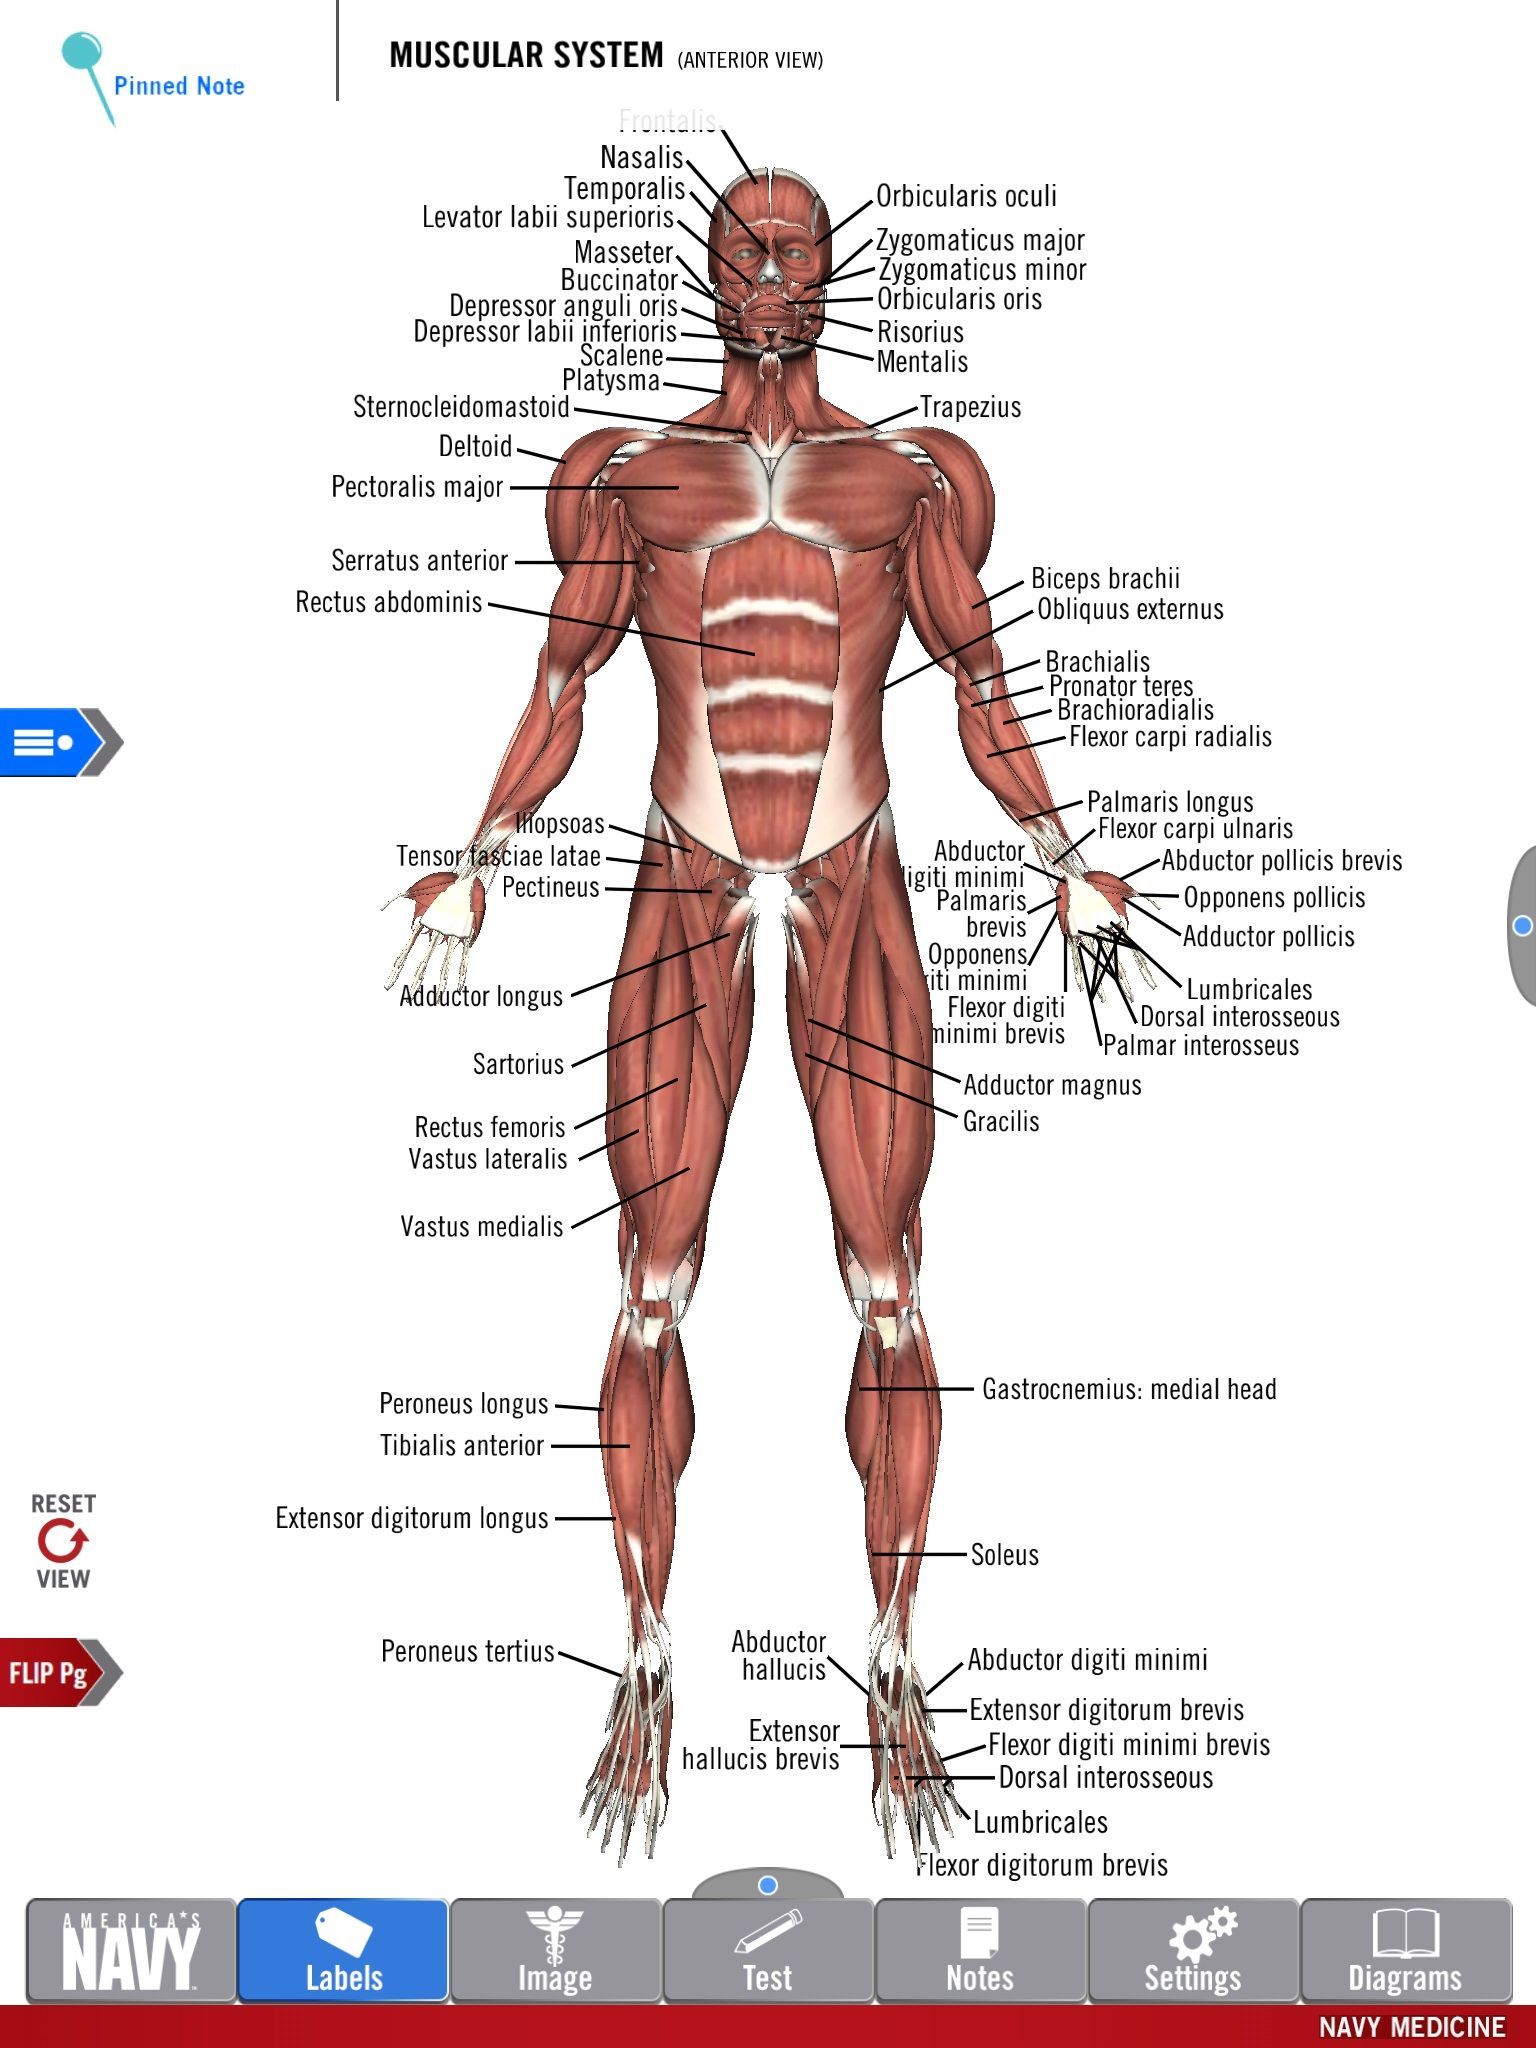 Diagram Of The Muscular System From The Free Anatomy Study Guide App